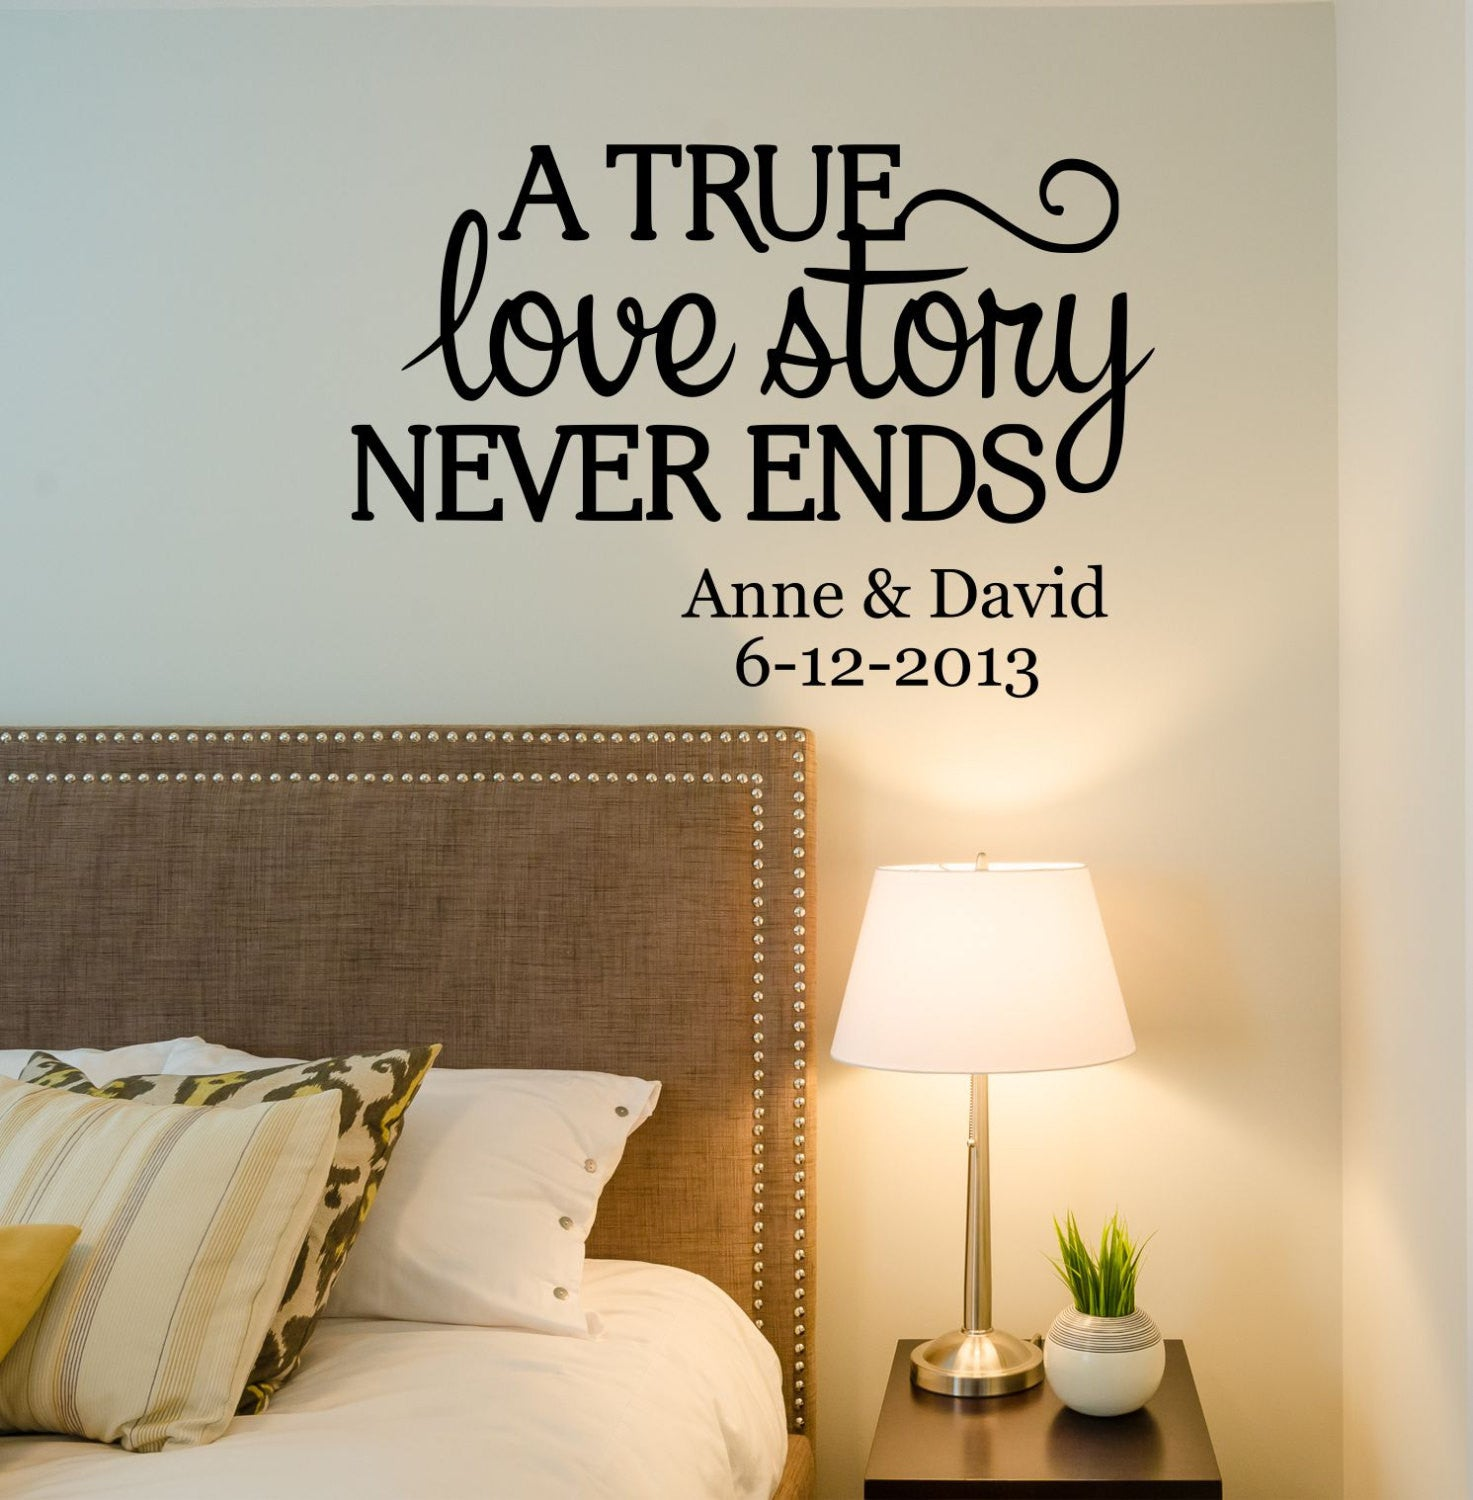 Love Story Quote Wall Decal- by Decor Designs Decals, love story decal,  bedroom decals,family name, family signs, Every Love Story, Love ...